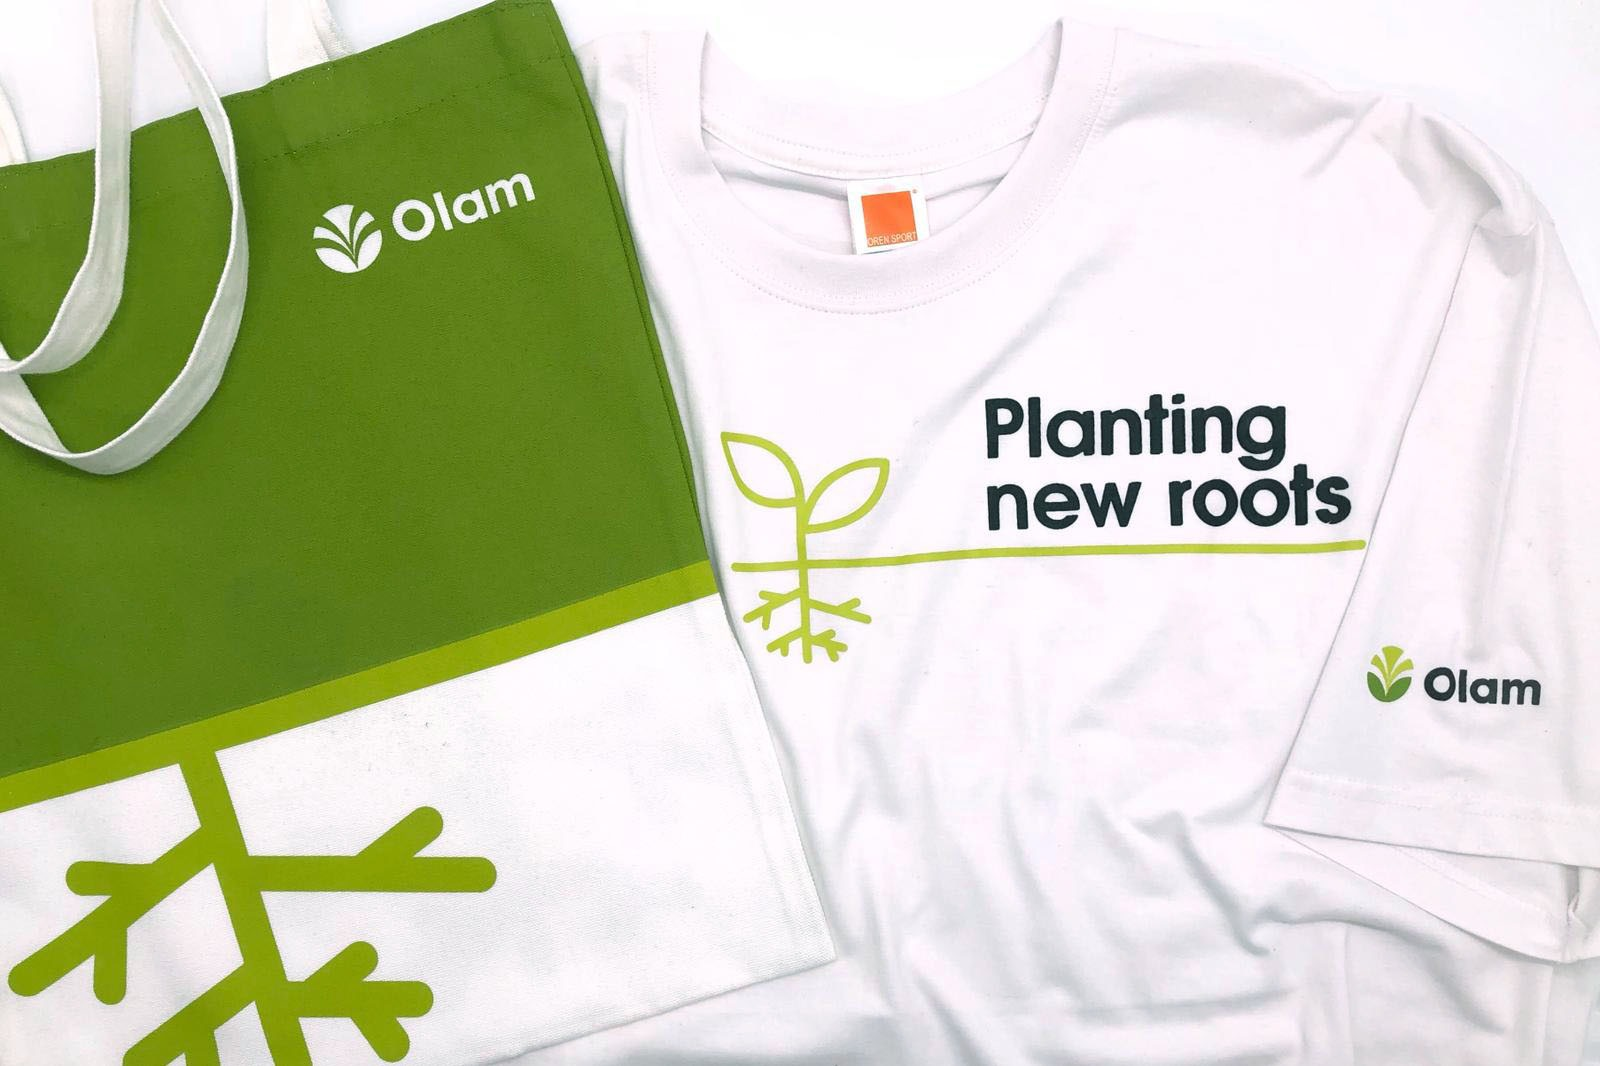 Olam Custom Printed Tote Bag and T Shirt